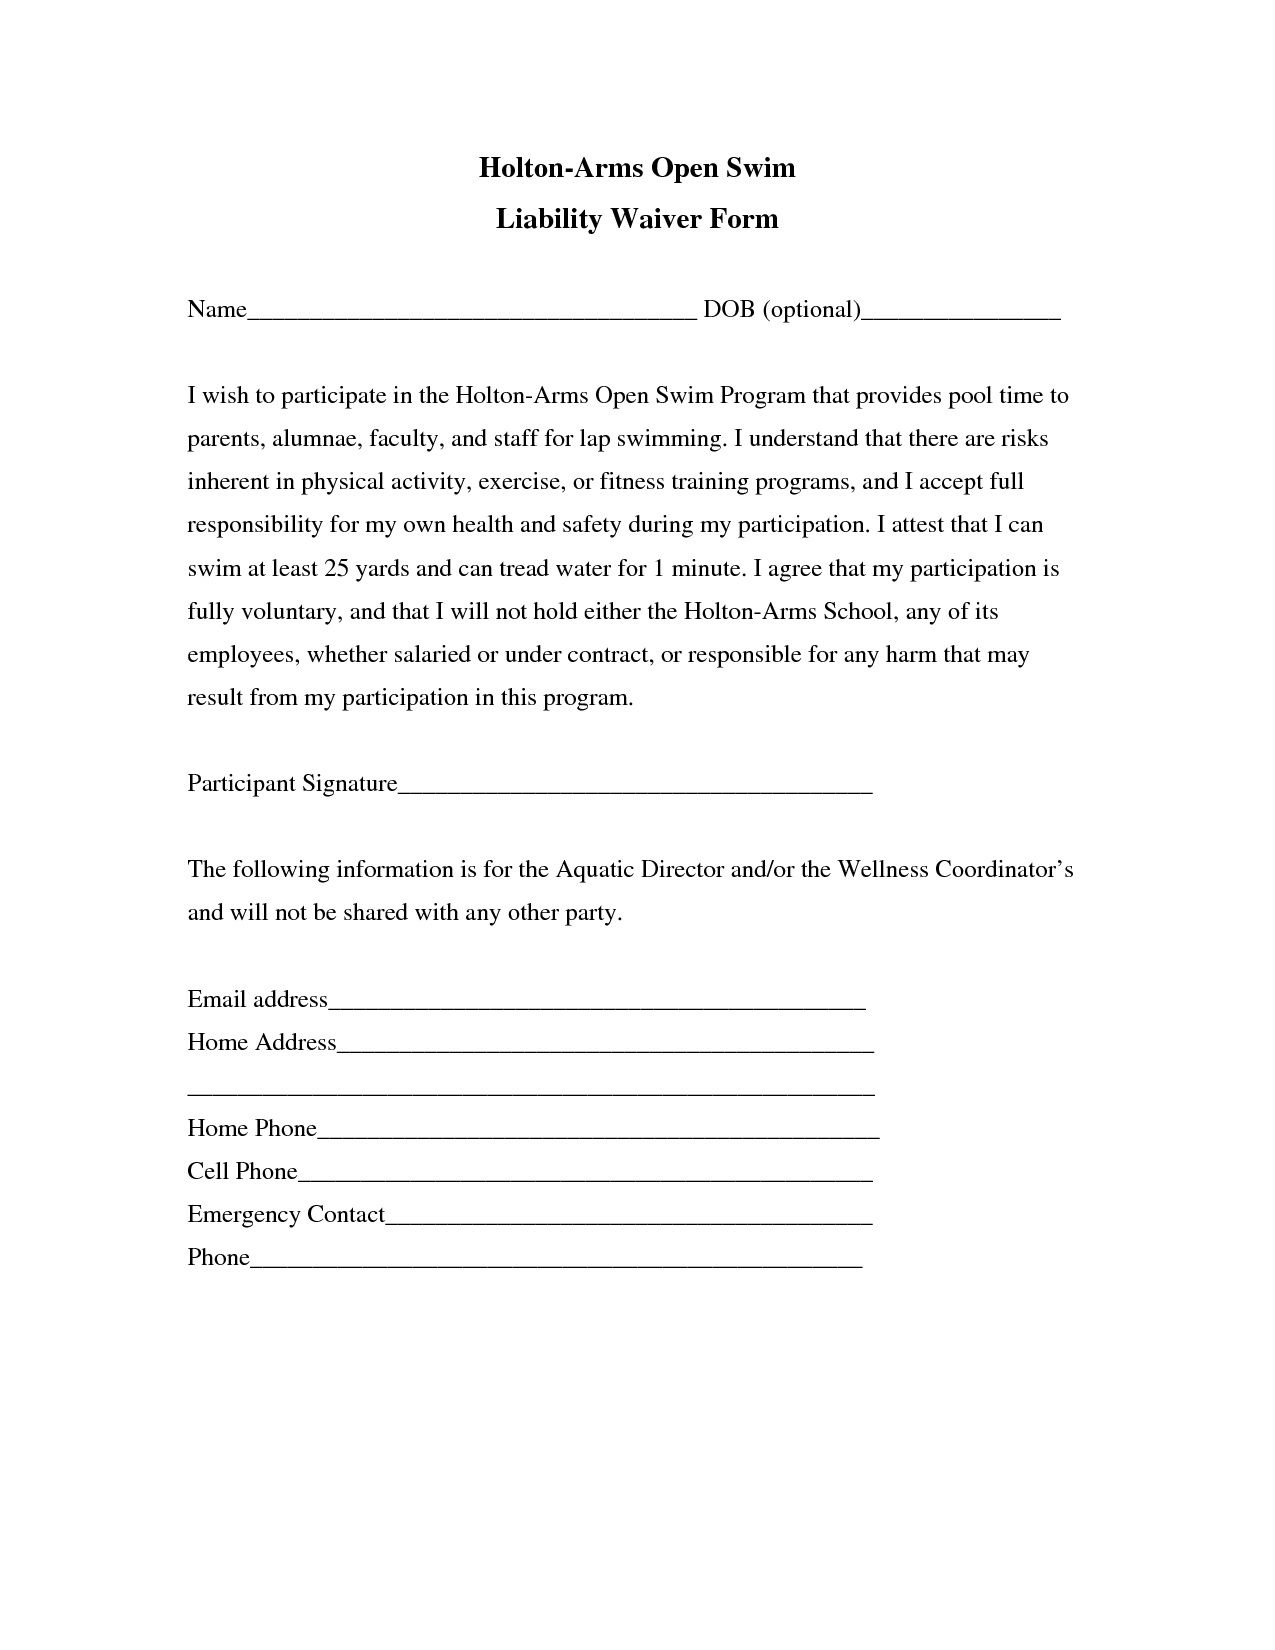 002 Awesome Liability Release Form Template Picture  General Waiver Church FreeFull